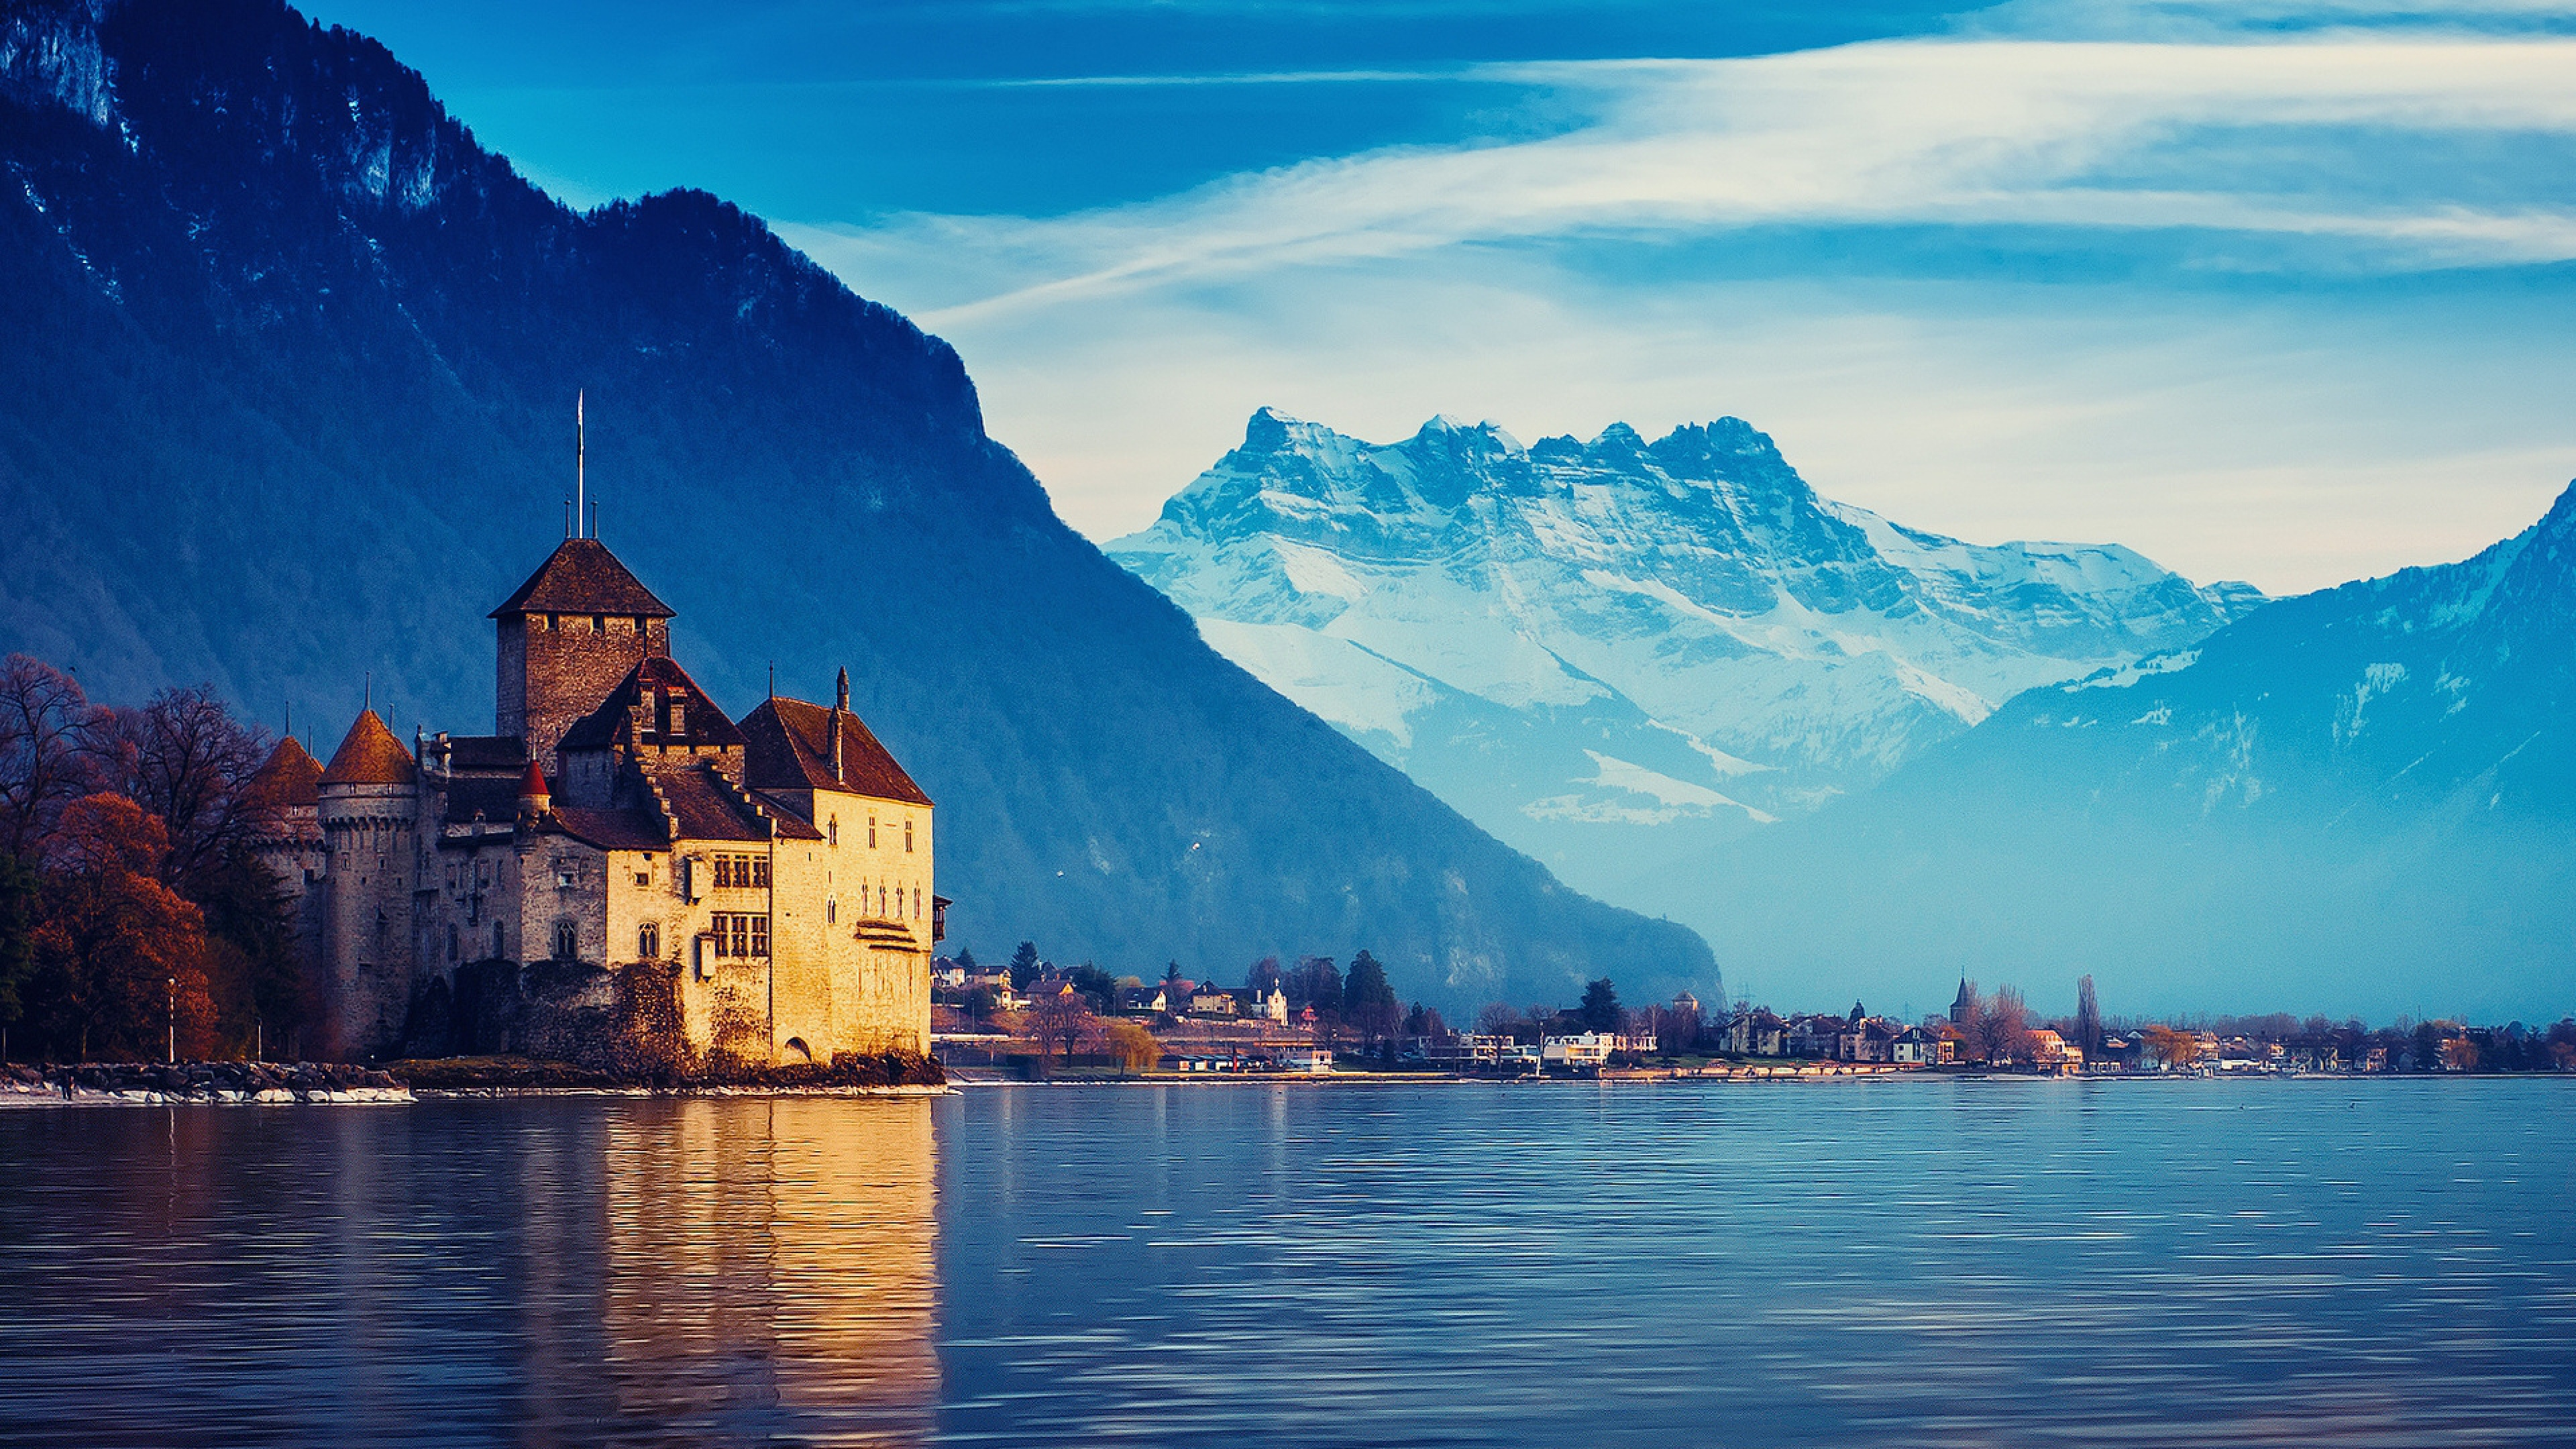 Lake geneva city Mountains Snow Wallpaper Background 4K Ultra HD 3840x2160